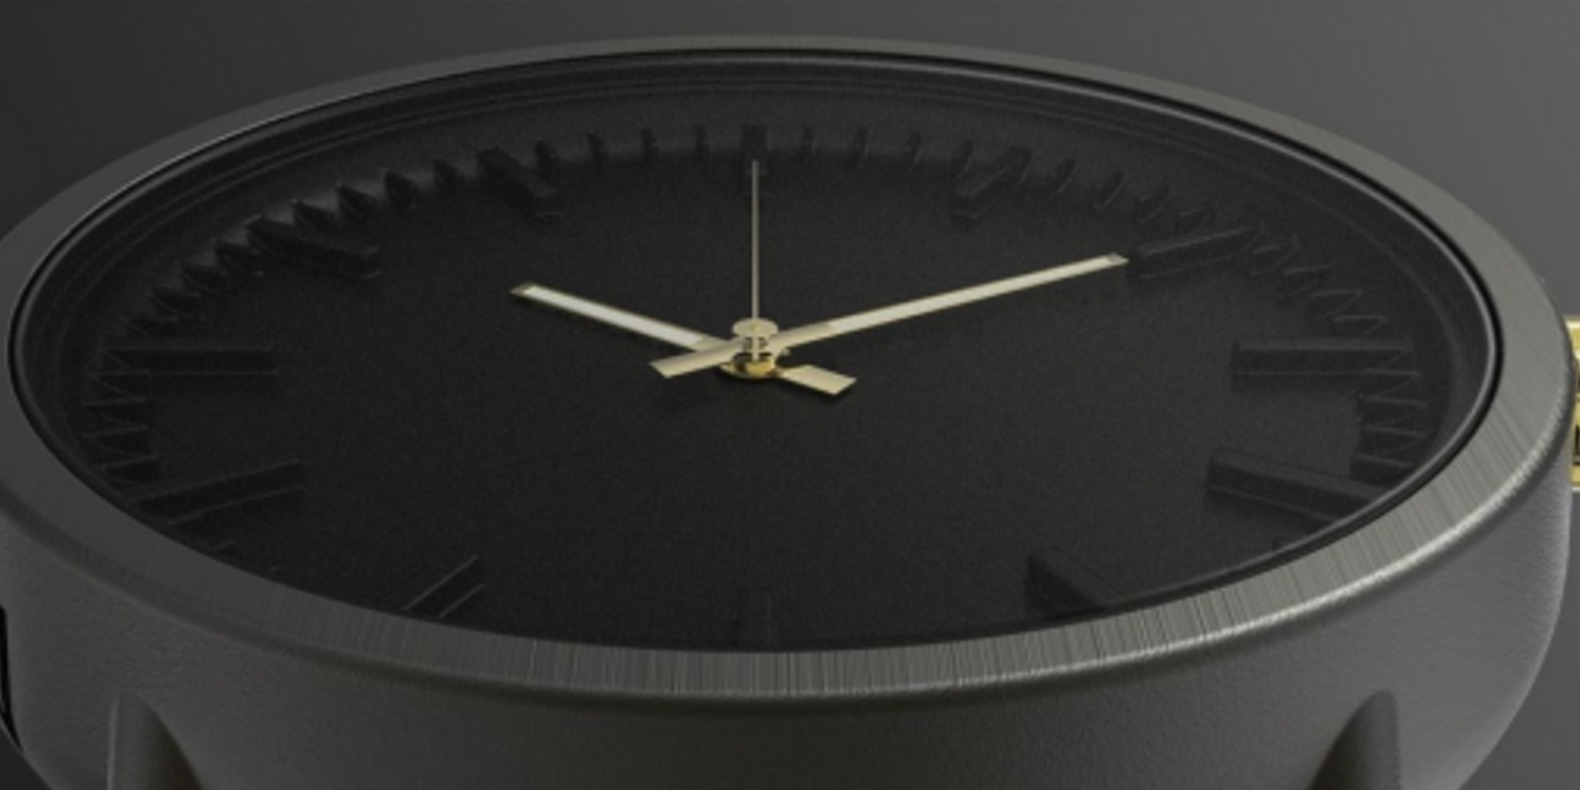 rvnDSGN, the first brand of watches printed in 3D